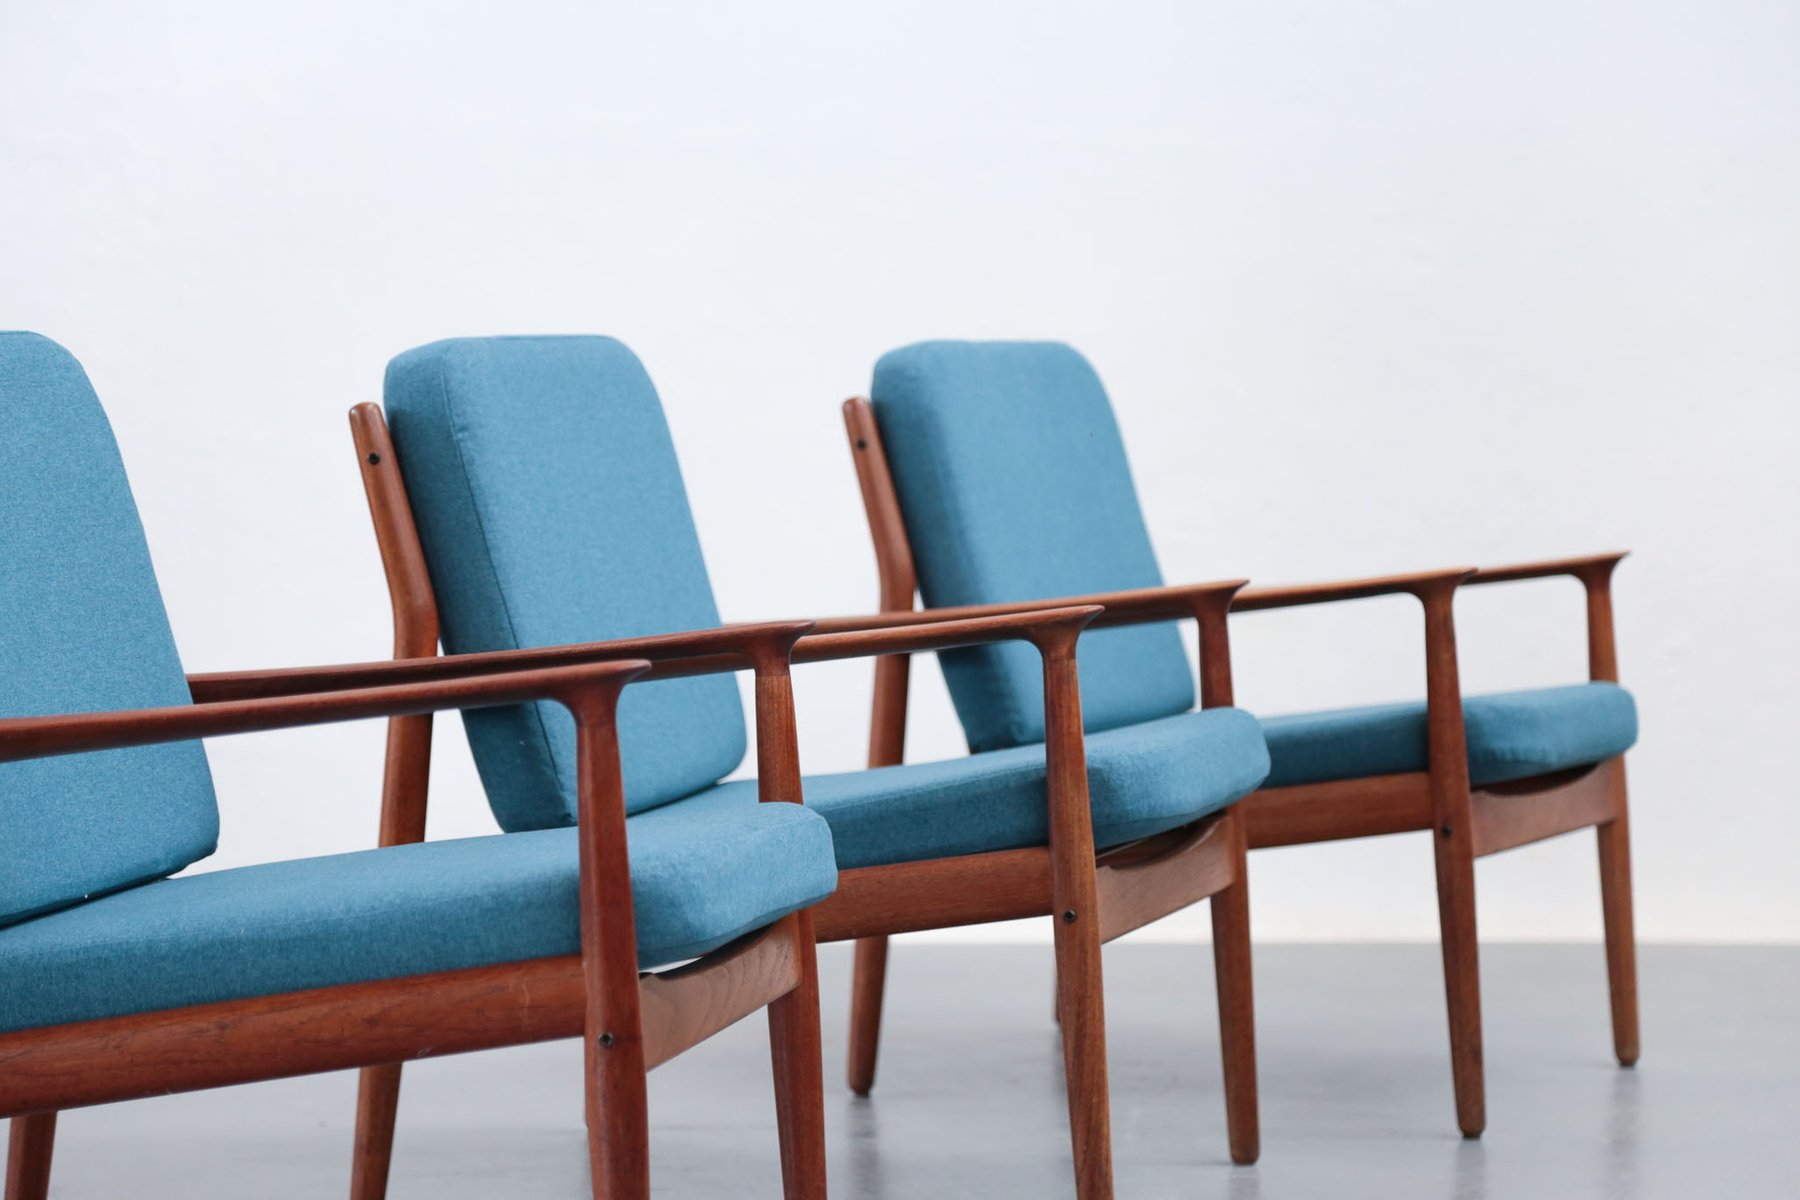 Danish Armchair by Grete Jalk for Glostrup 1960s for sale at Pamono